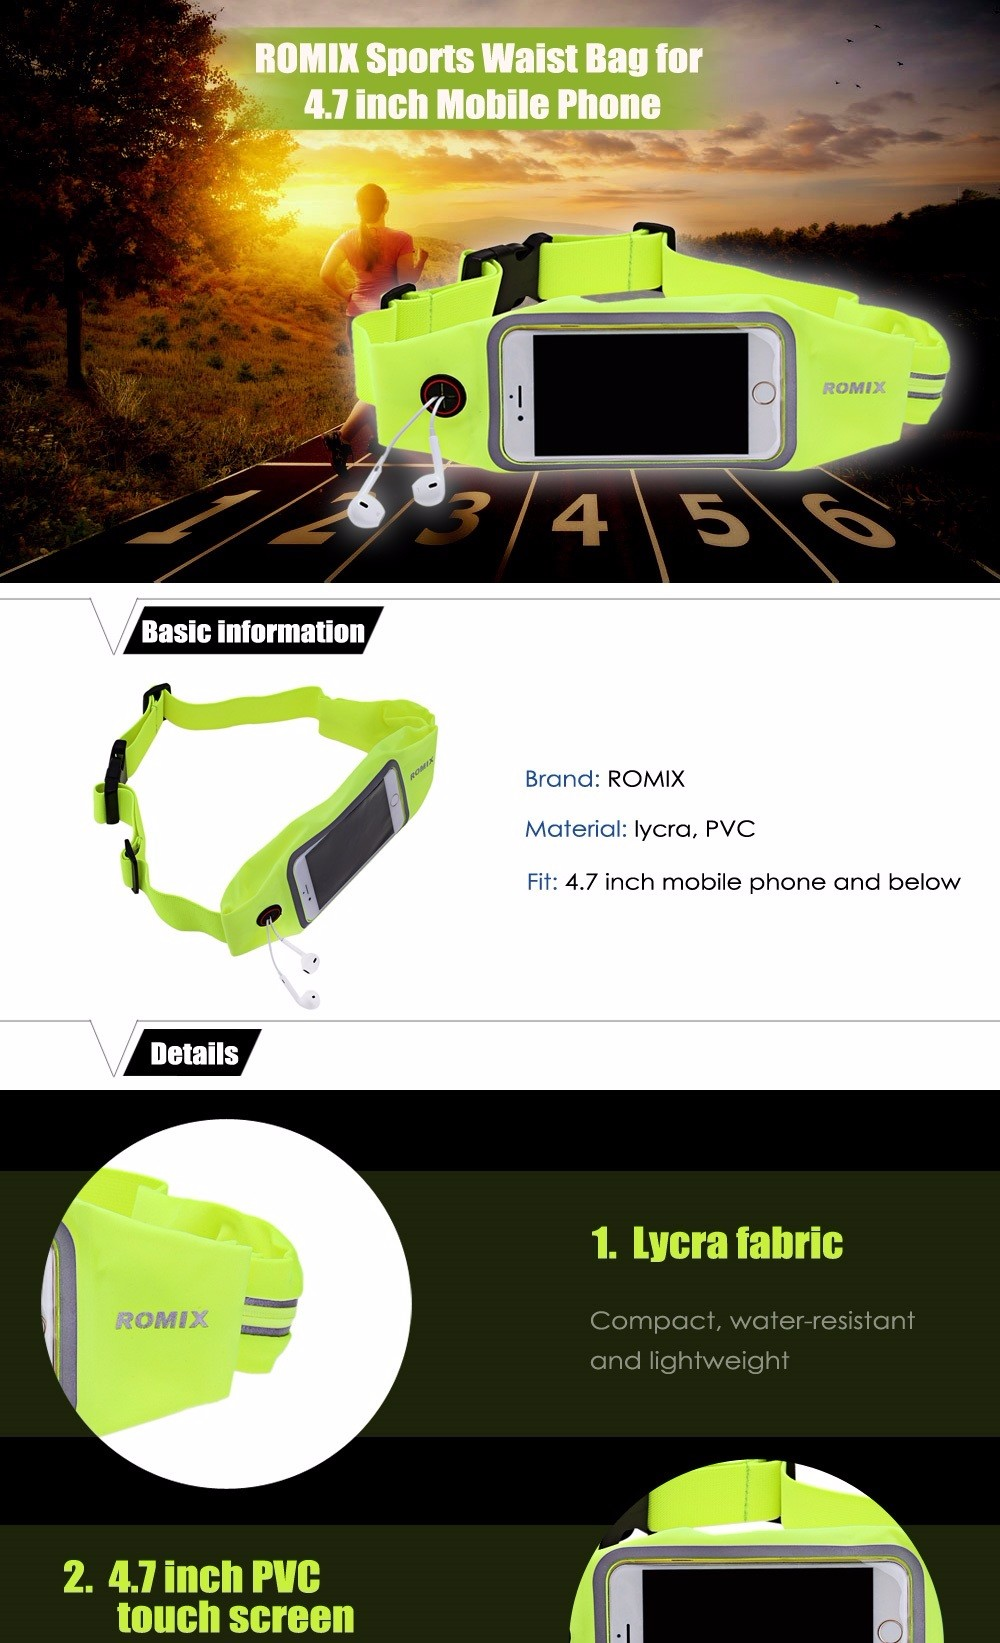 ROMIX RH16 - 4.7 Water-resistant Lycra Sports Waist Bag for 4.7 inch Mobile Phone